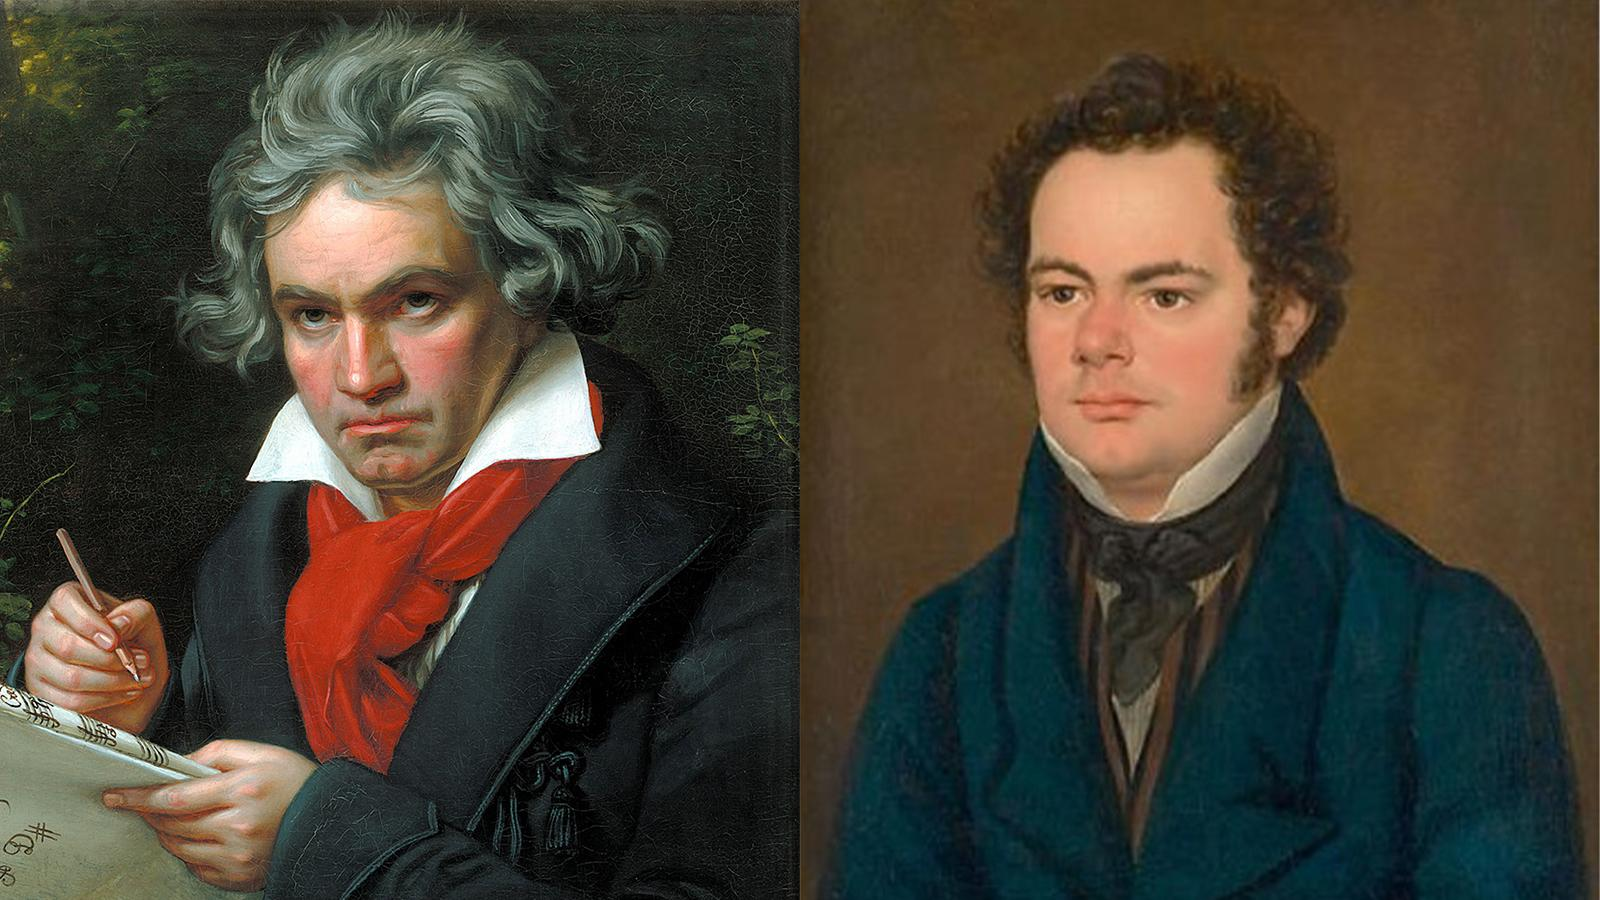 Side-by-side portraits of Beethoven and Schubert